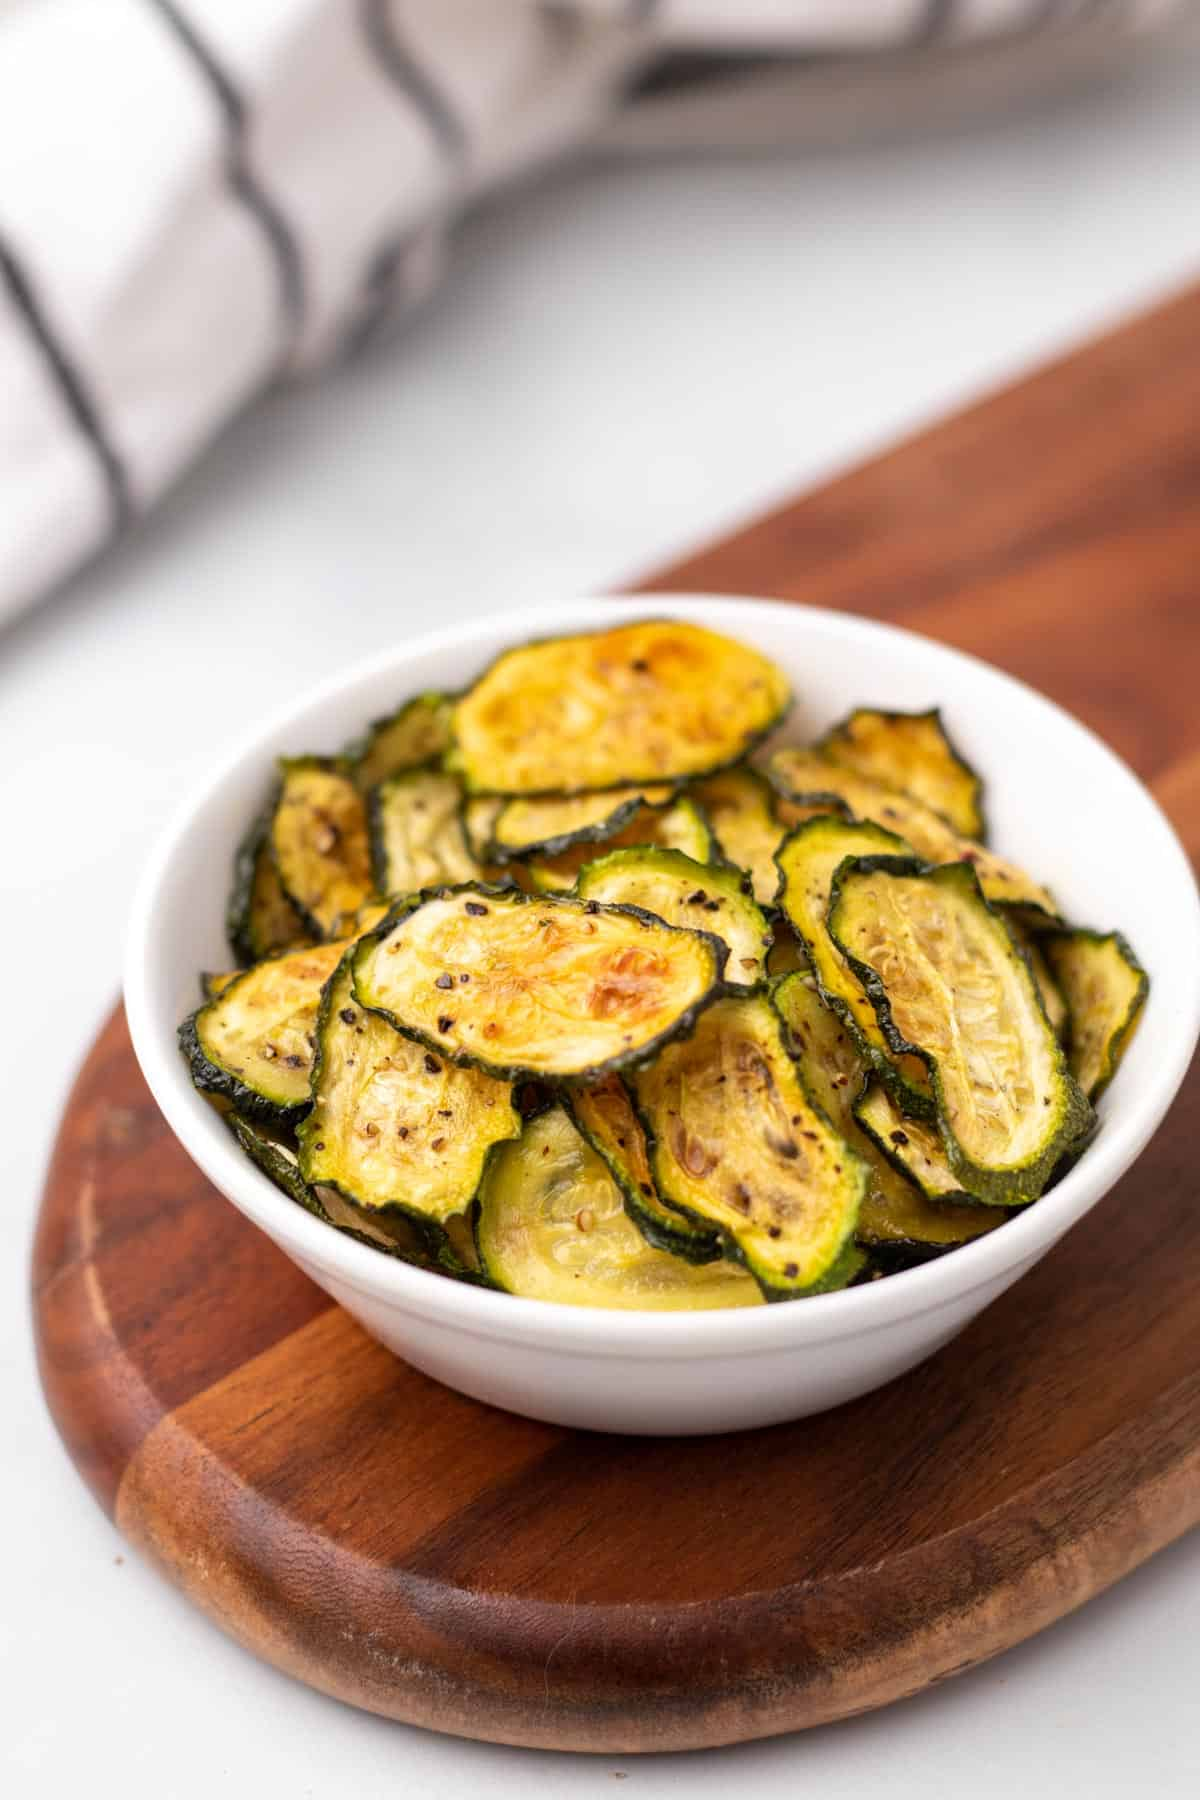 Finished low-carb zucchini ships in a white bowl